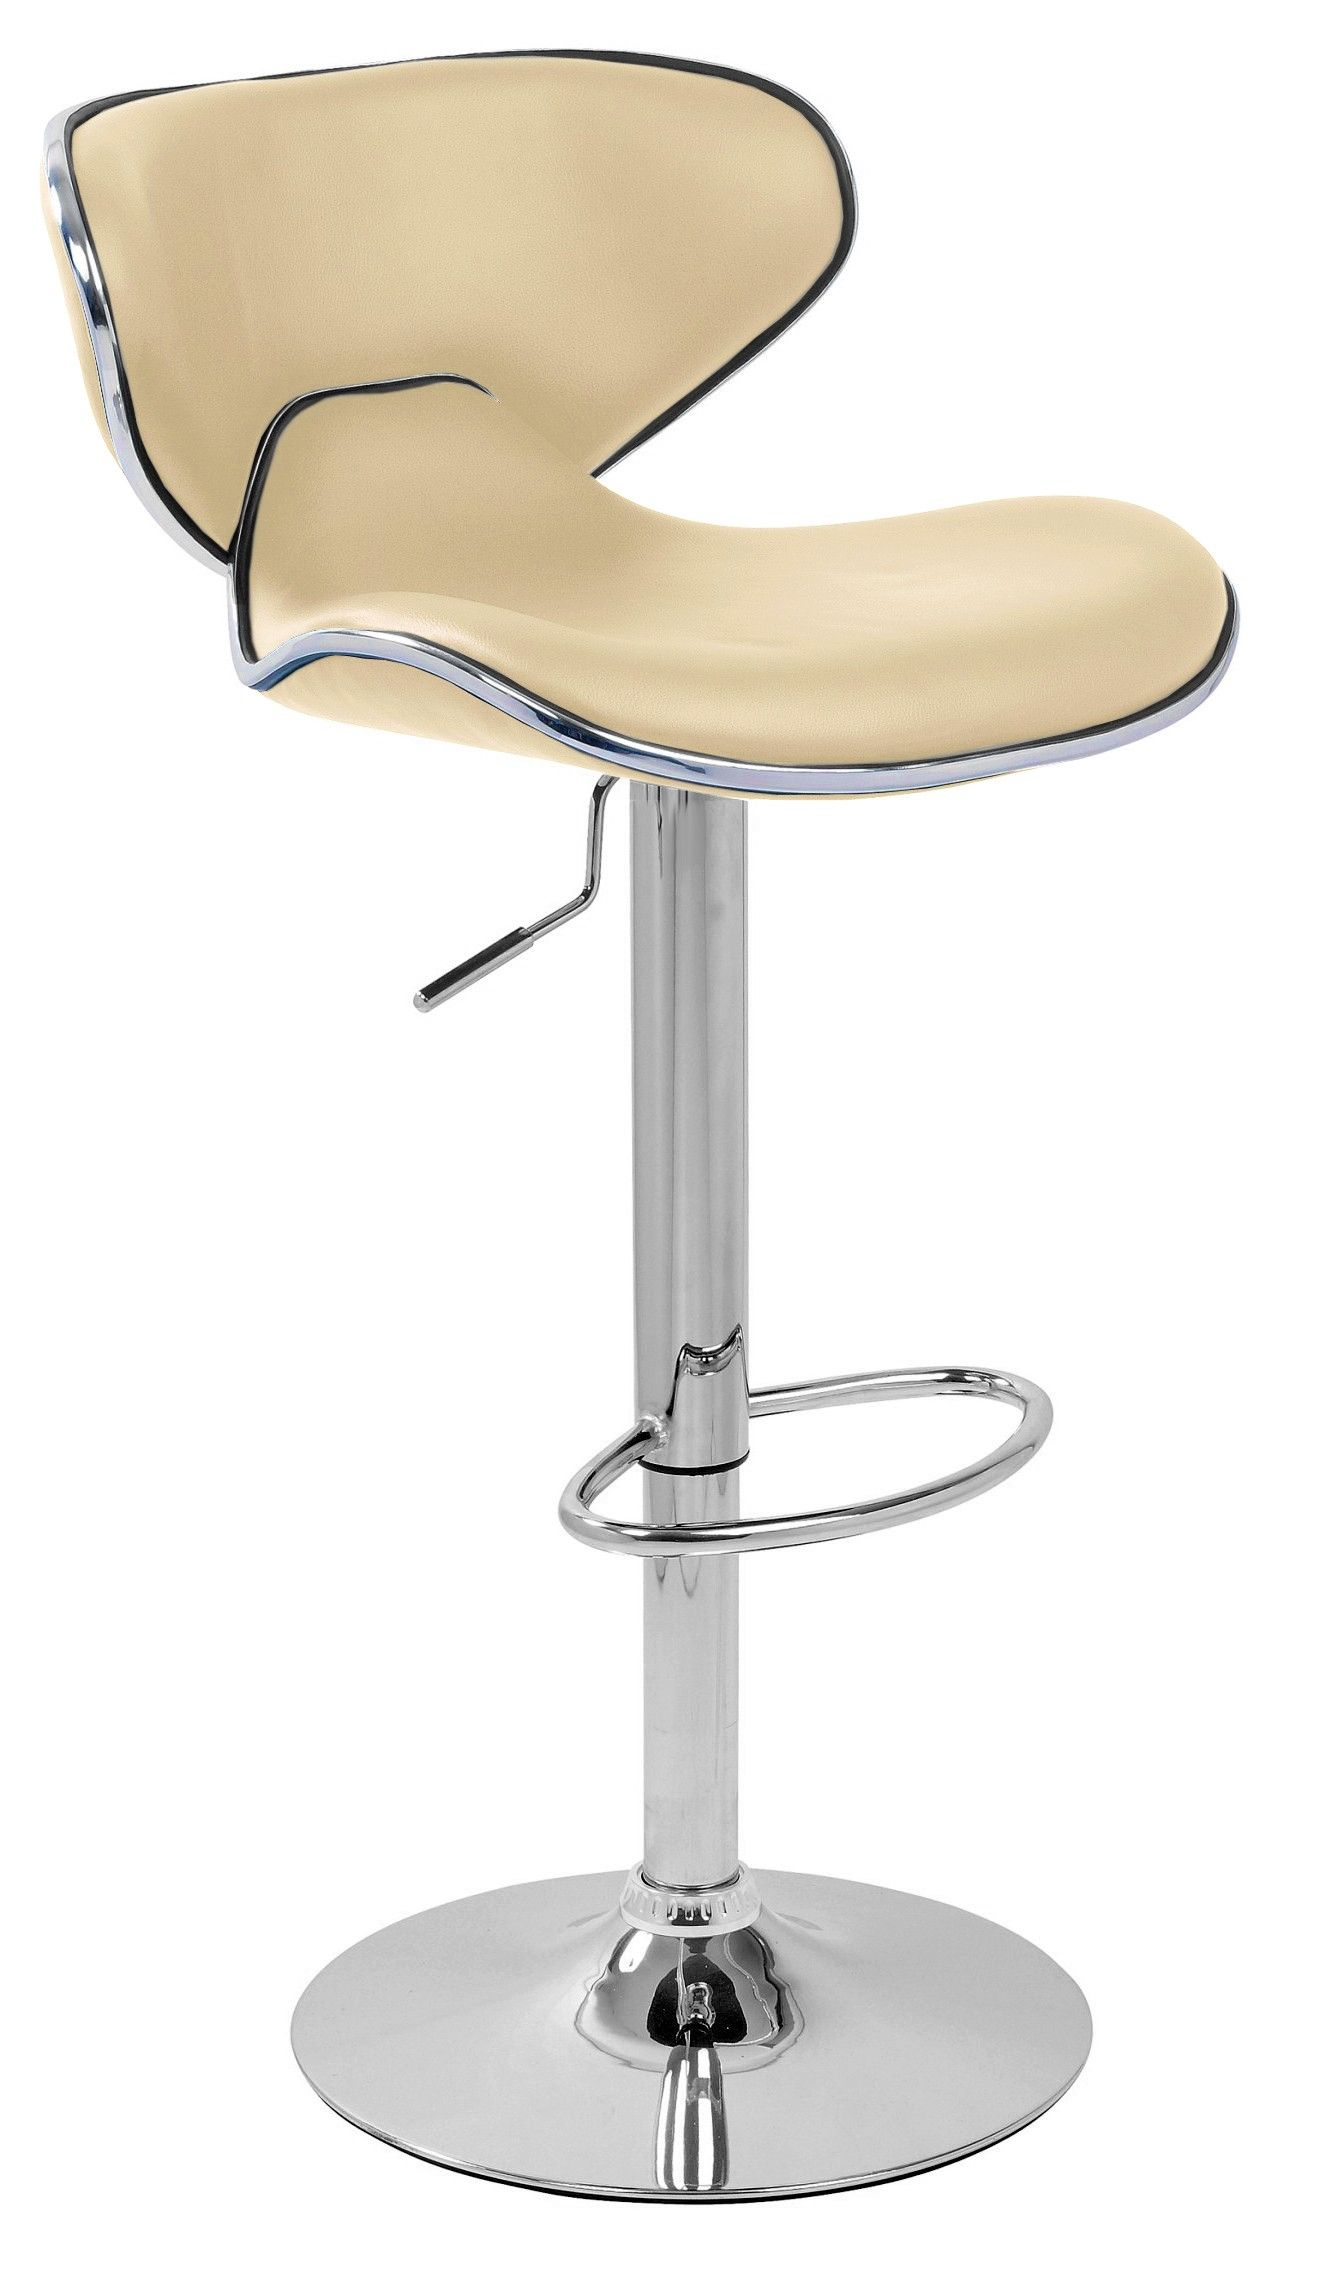 Neutral Color Of Modern Bar Stool Design With Adjustable Height And Round Stainless Steel Base Also Back Support And Cream Leather Top With Metallic Accent